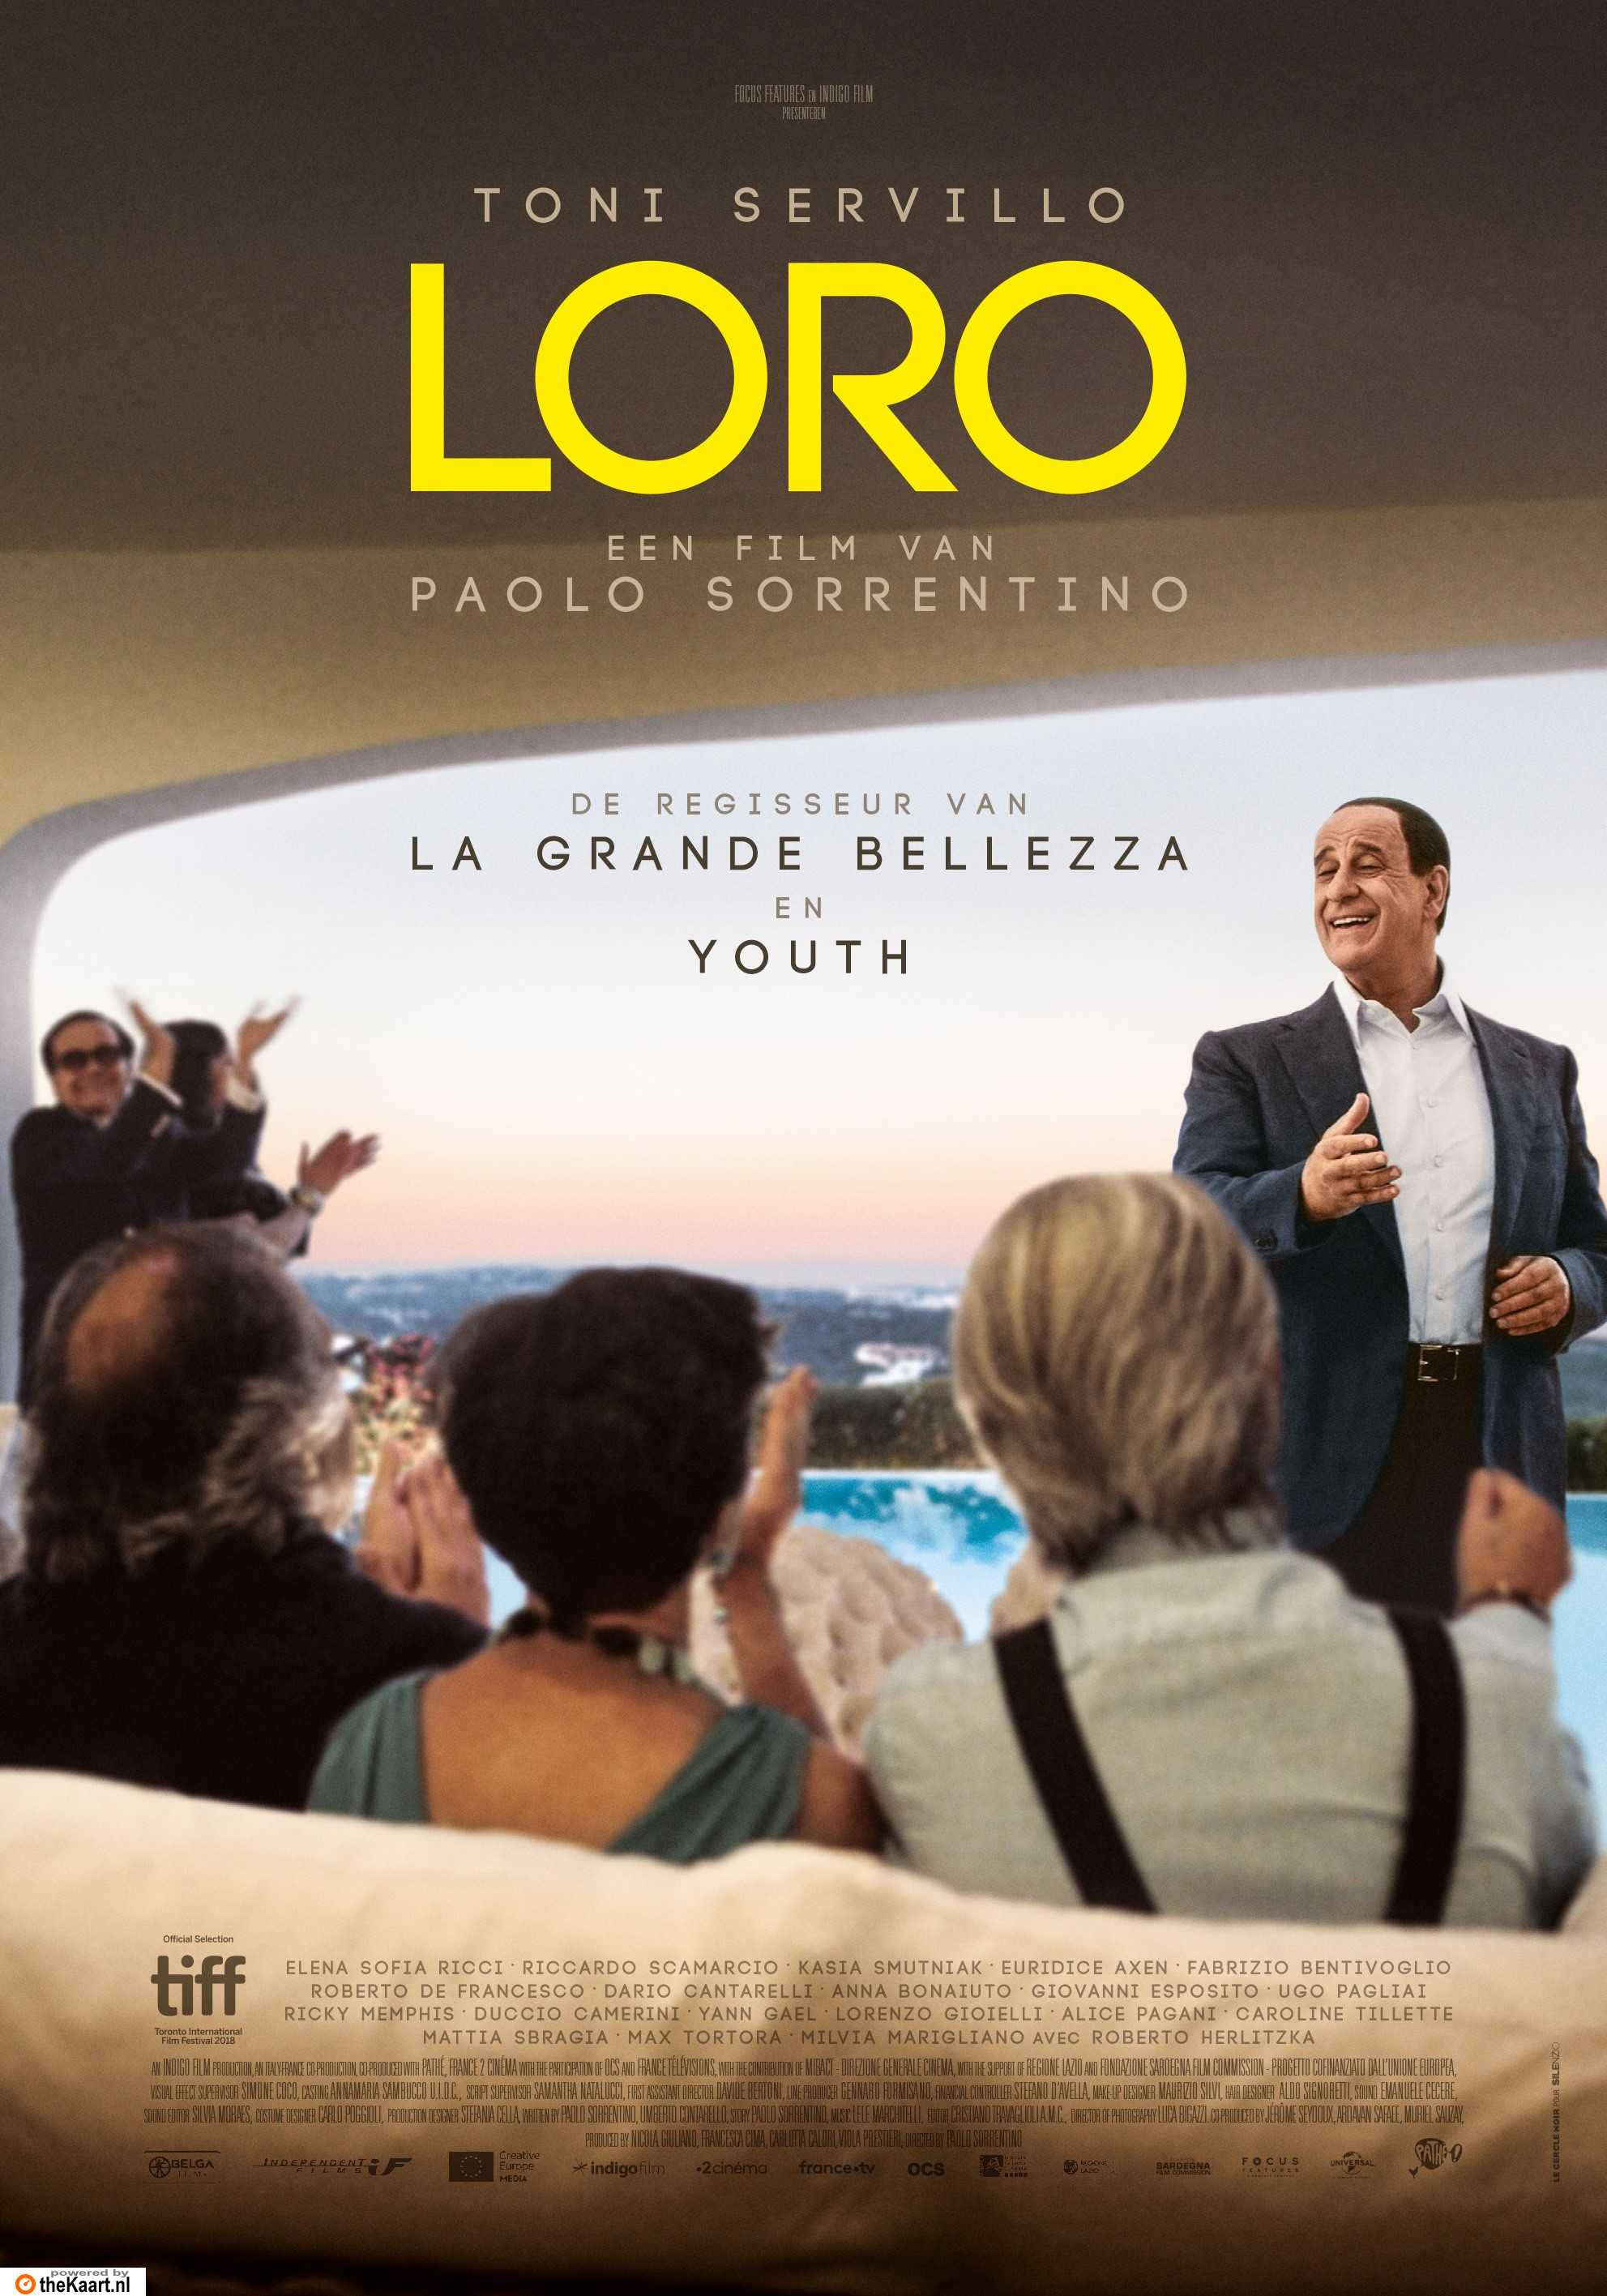 Loro poster, © 2018 Independent Films